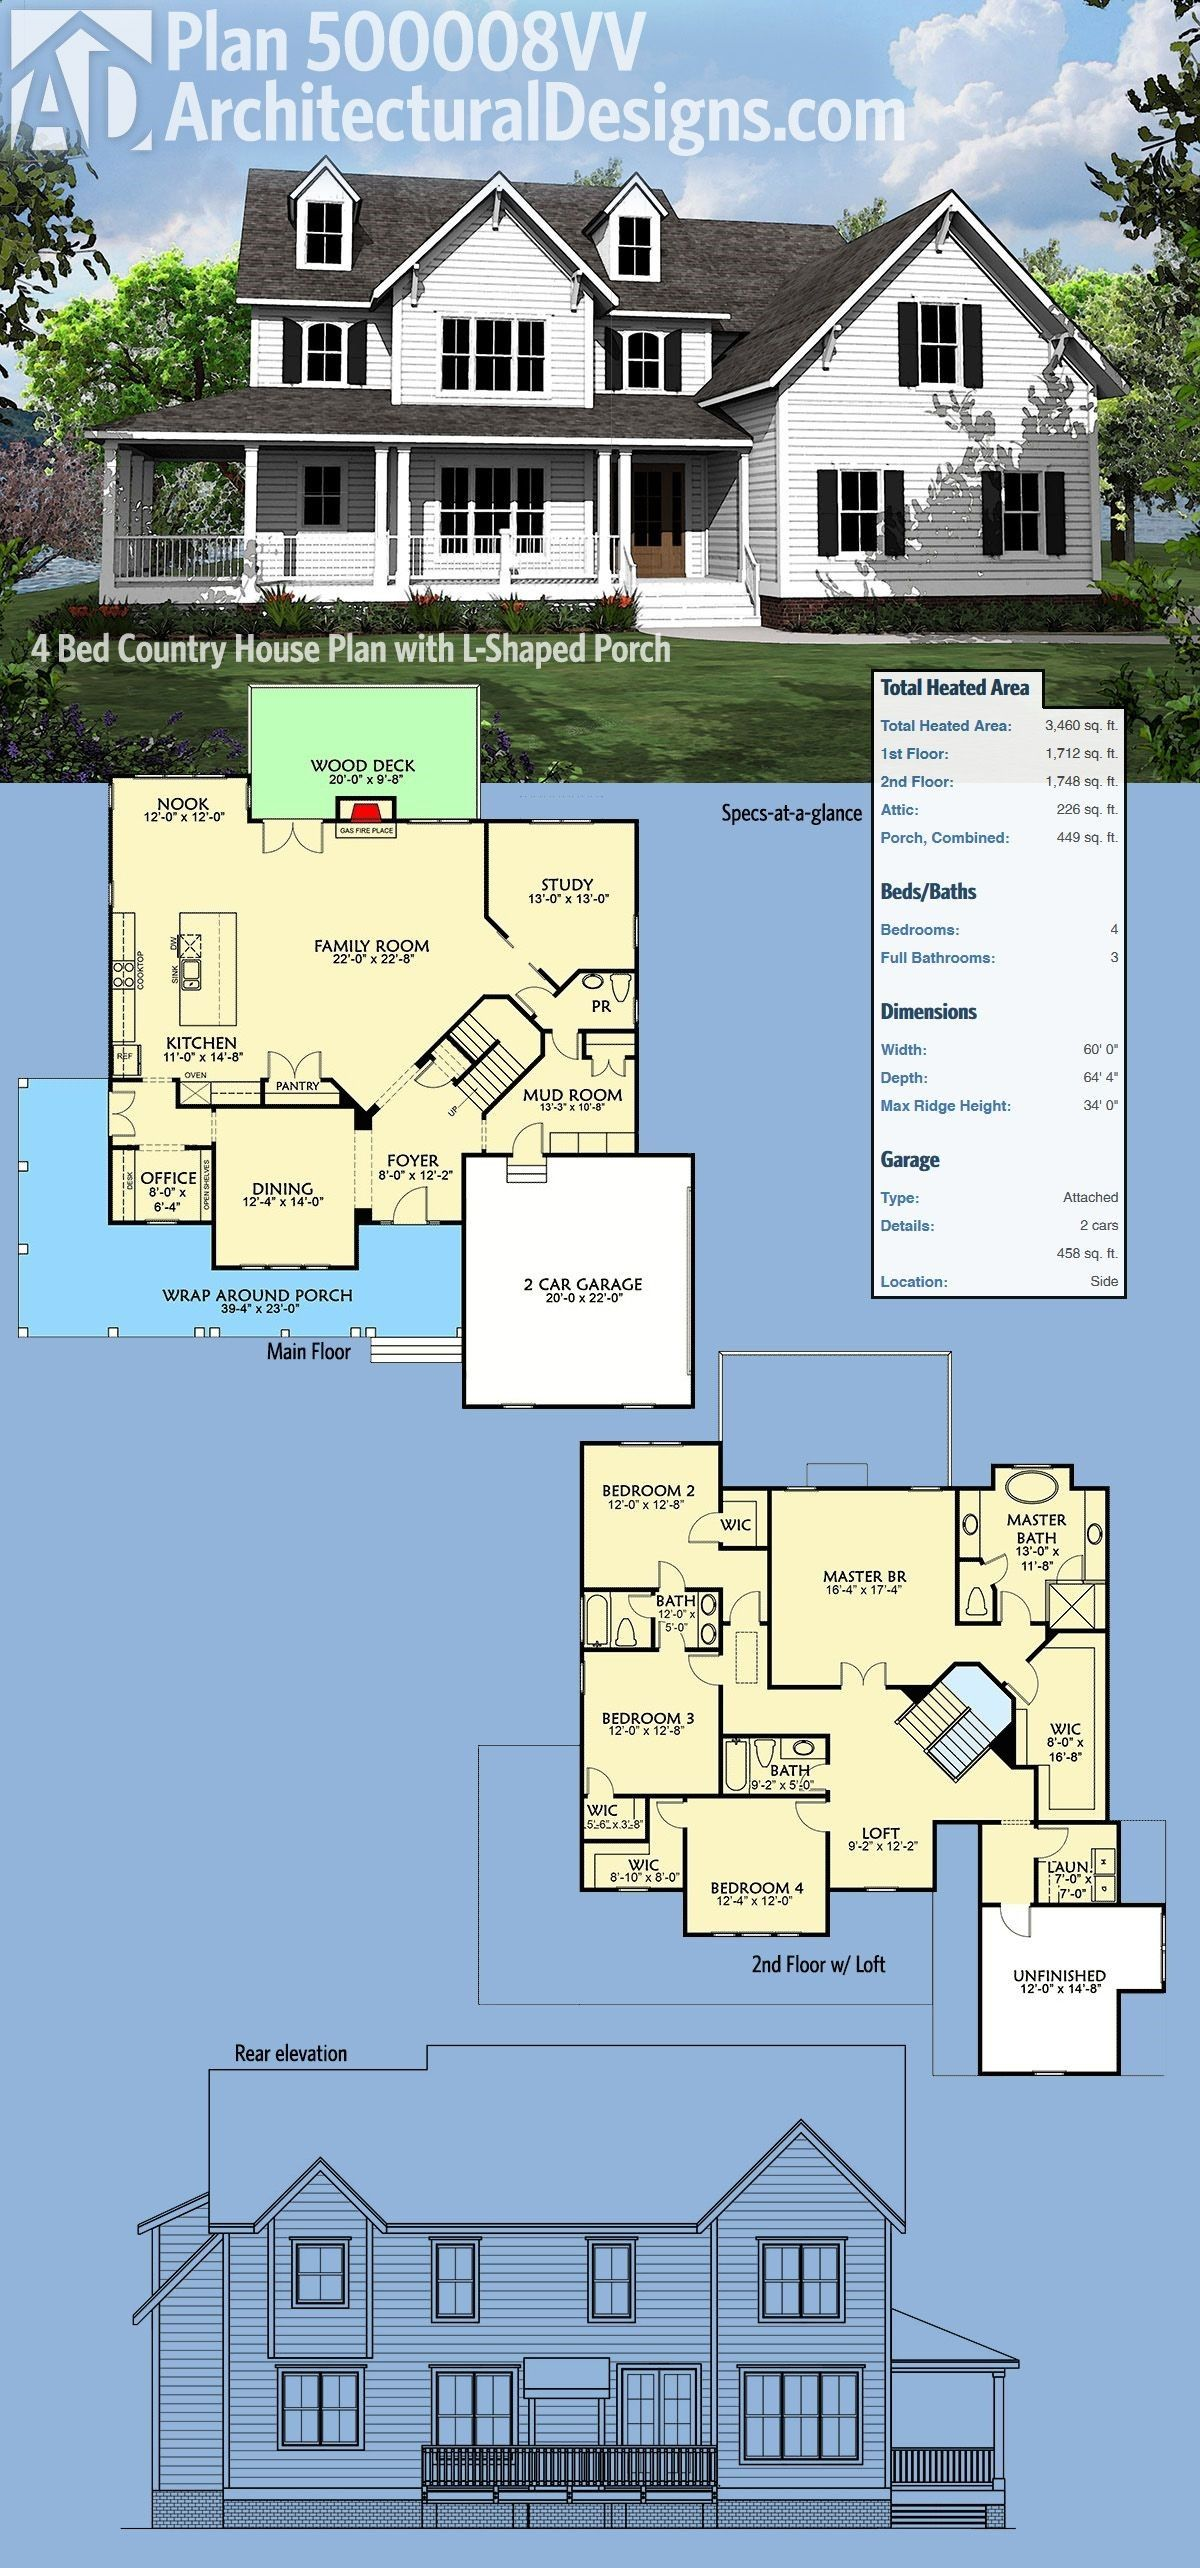 Architectural Designs Country House Plan 500008vv Has A Gorgeous L Shaped Porch This Plan Gives Y Country House Plan Country House Plans Farmhouse Floor Plans